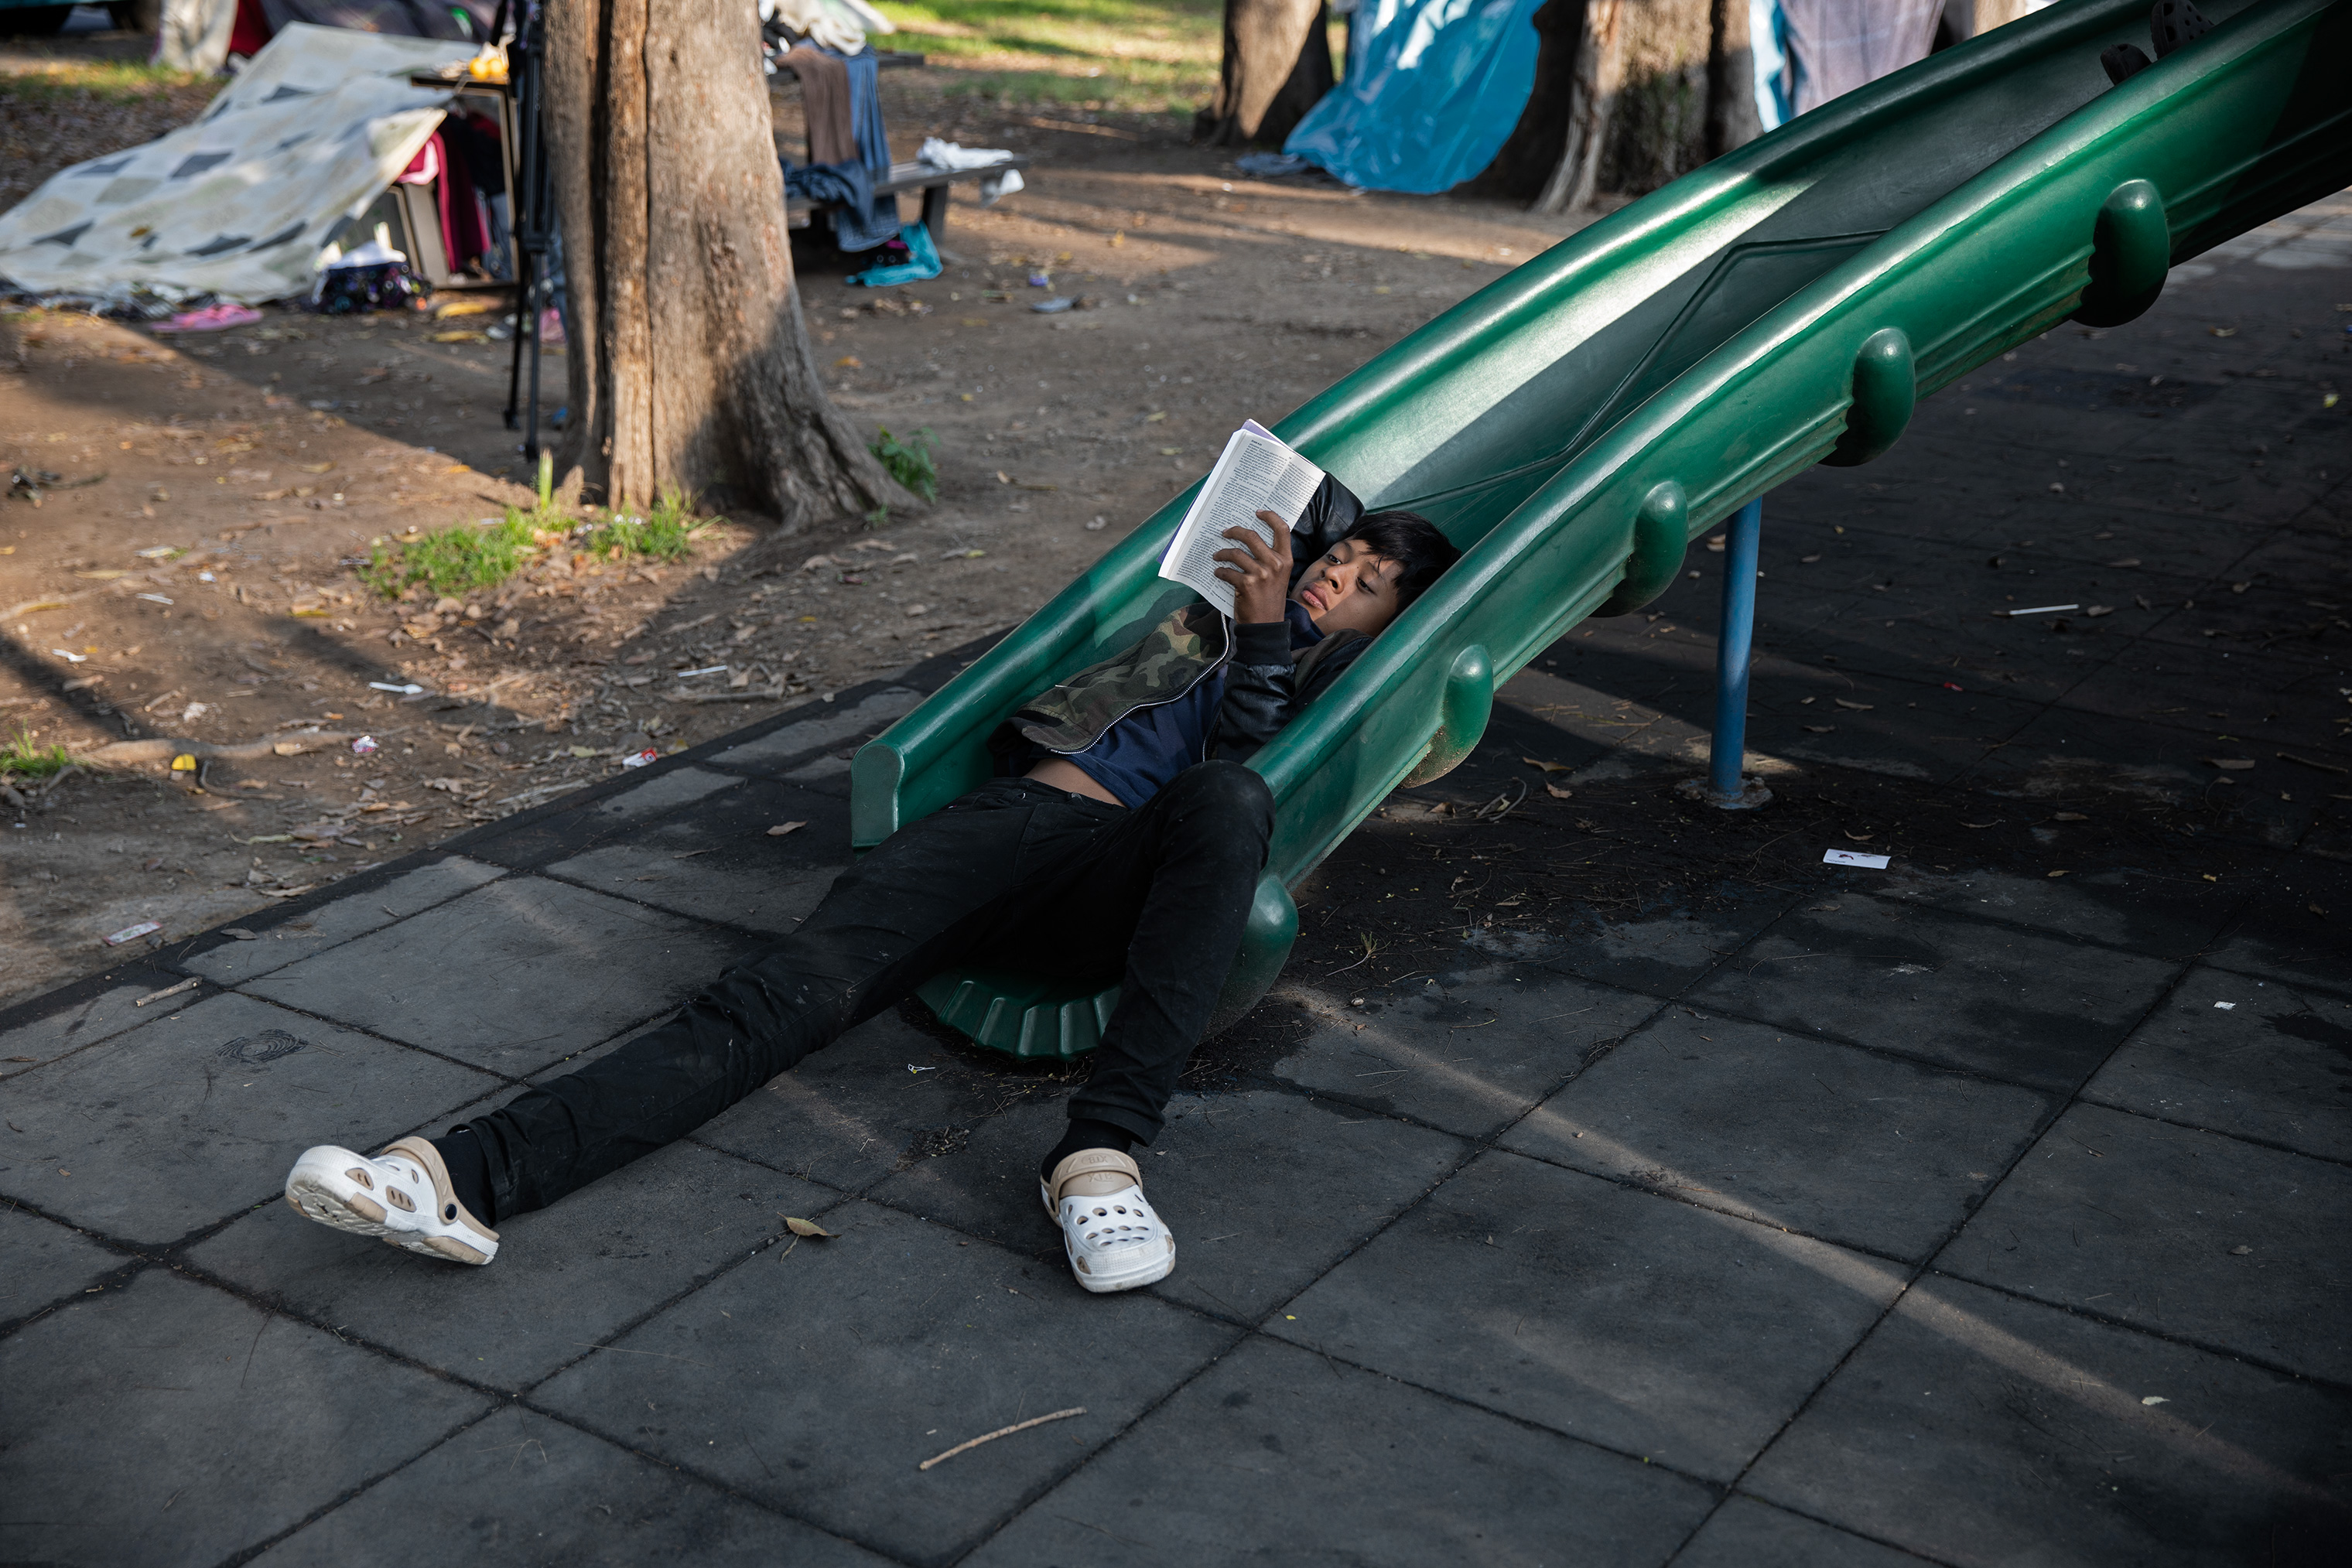 The Jesus Martinez stadium in Mexico City includes several playgrounds where some of the 2,300 minors from the caravan played, rested and read books, Nov. 7, 2018.